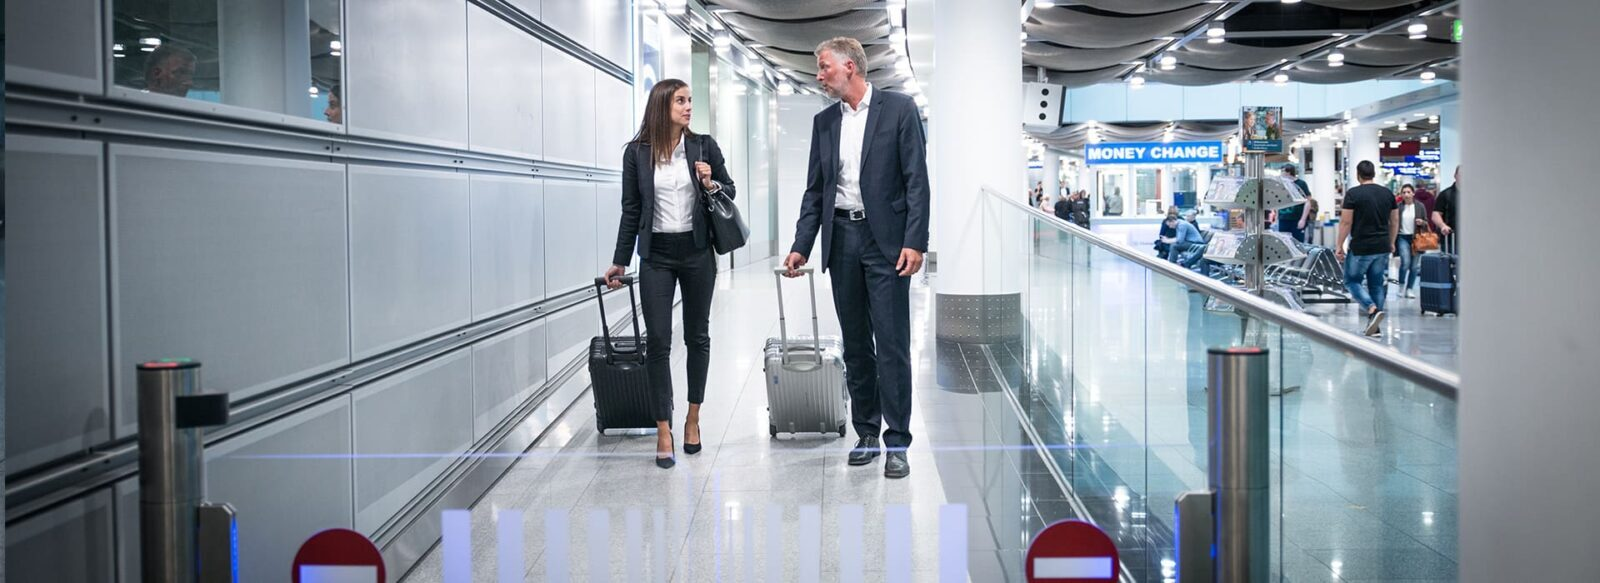 Flughafen HM business travel 1 - Hotels for IAA Commercial Vehicles 2020 Hanover